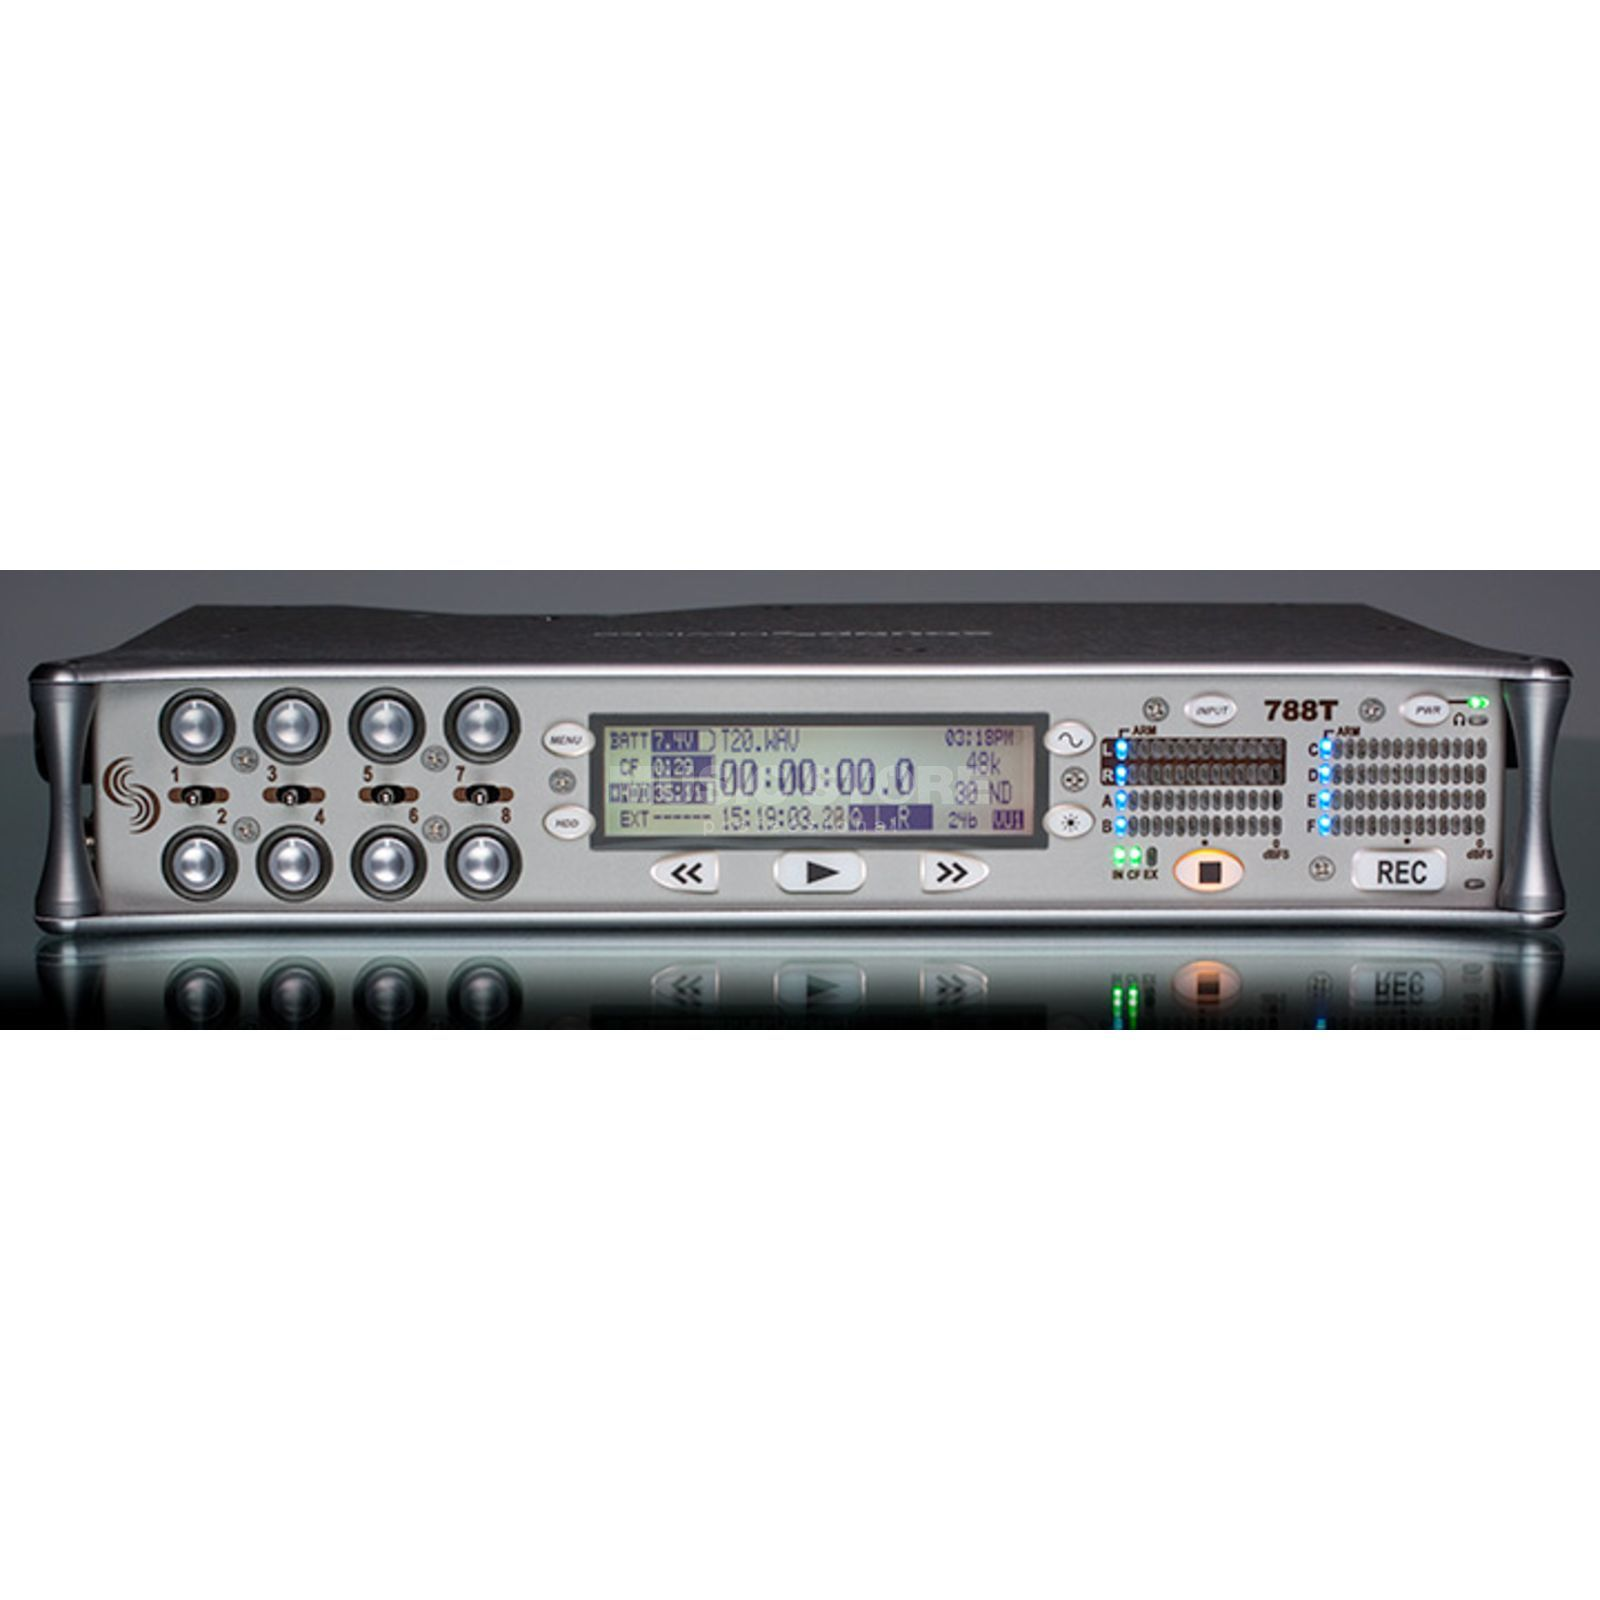 Sounddevices 788T SSD Dig. Audio Recorder  Produktbild